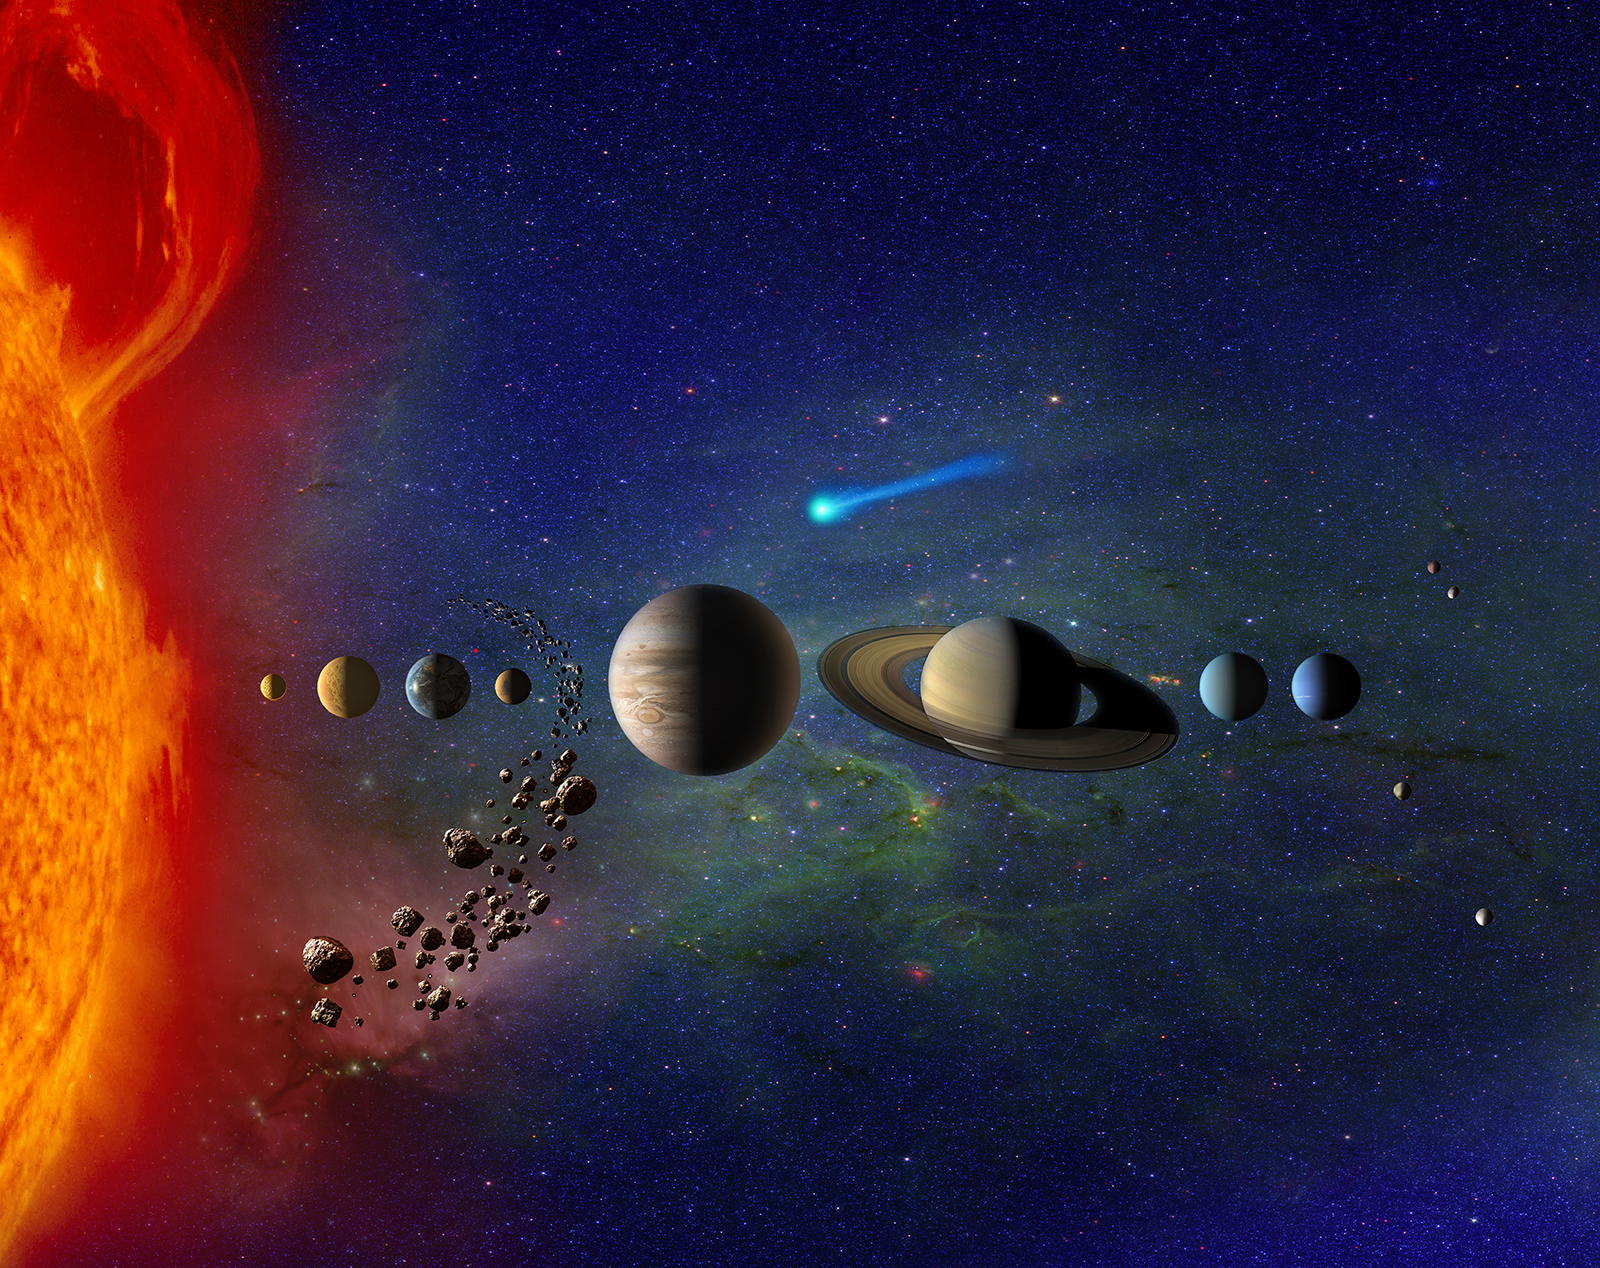 Nasa Image of the Solar System.jpg